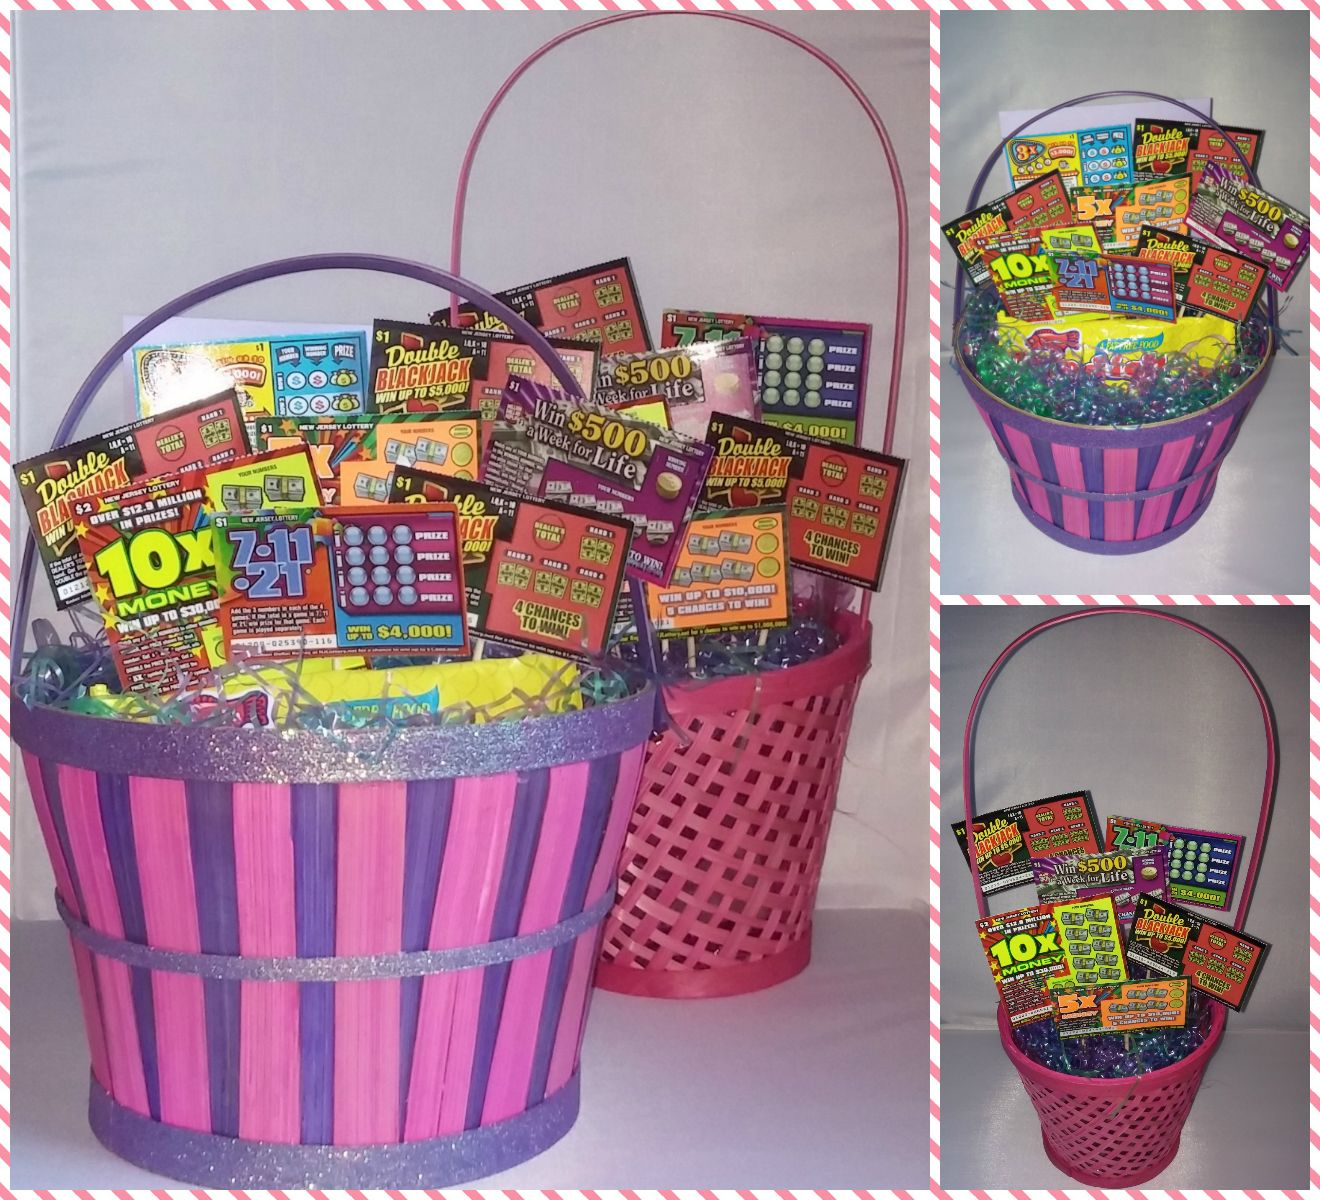 Easter basket lottery scratch off tickets for parents and easter basket lottery scratch off tickets for parents and grandparents negle Images